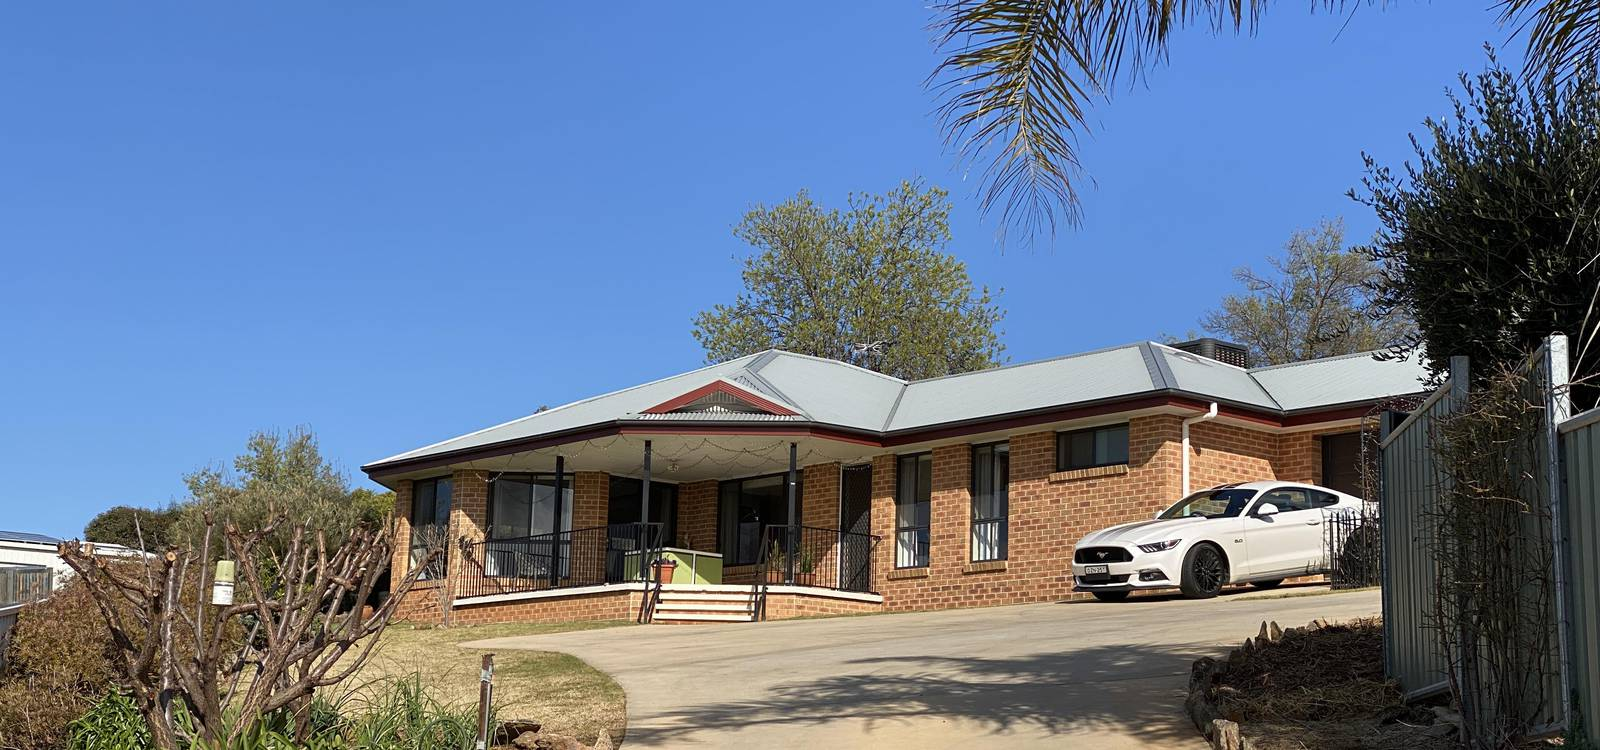 3 Chantilly Place YOUNG, NSW 2594 - photo 1